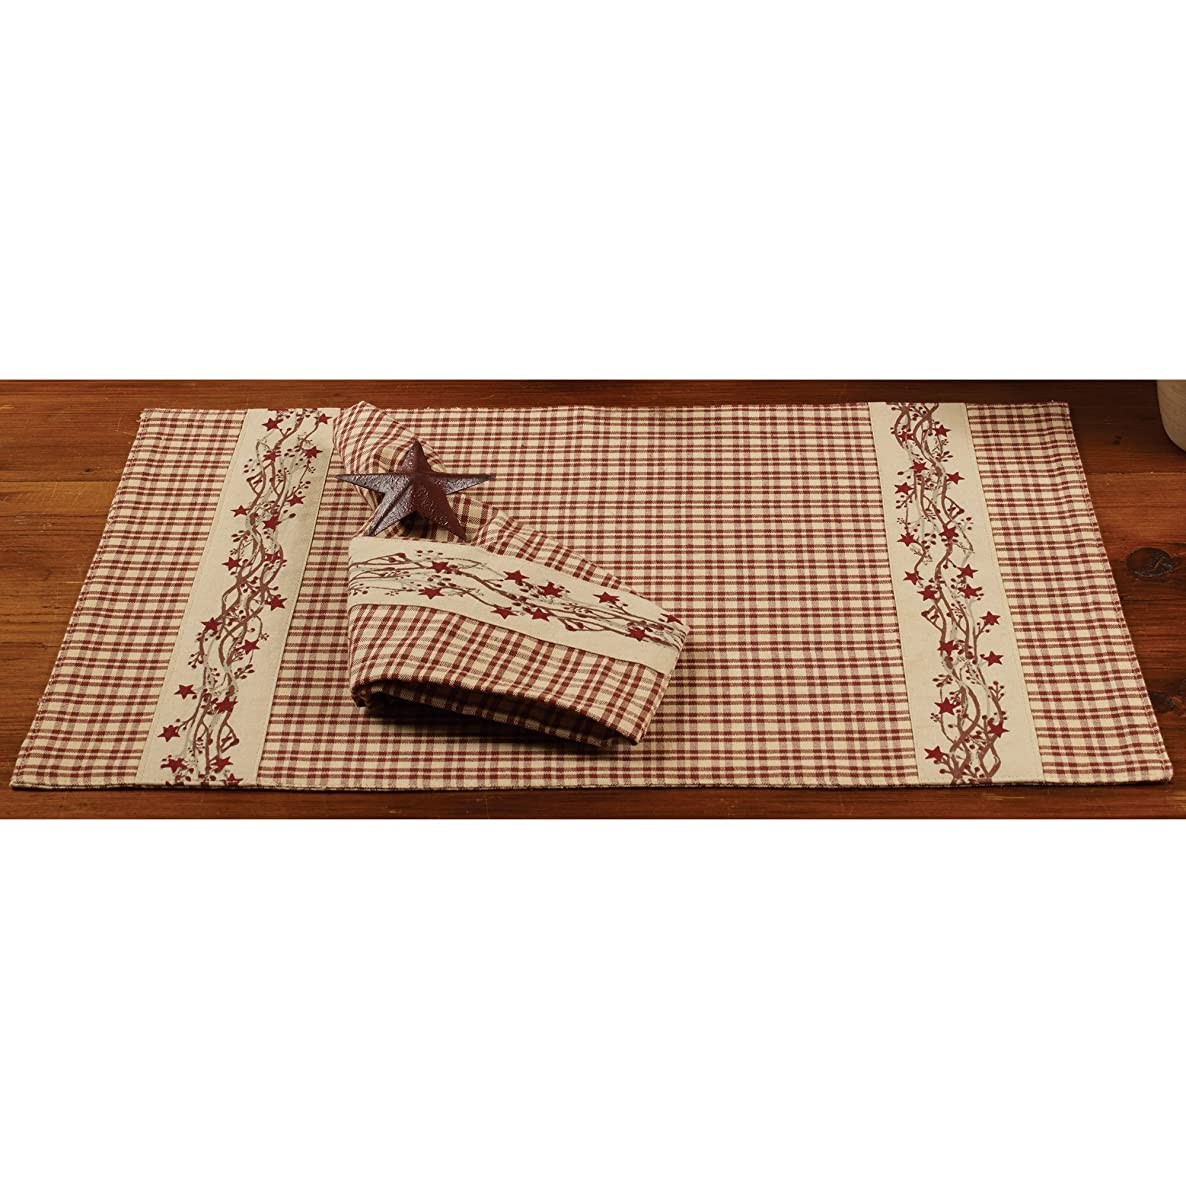 Farmhouse Berry Country Plaid 13 x 19 Cotton Embroidered Appliqued Placemats Set of 4